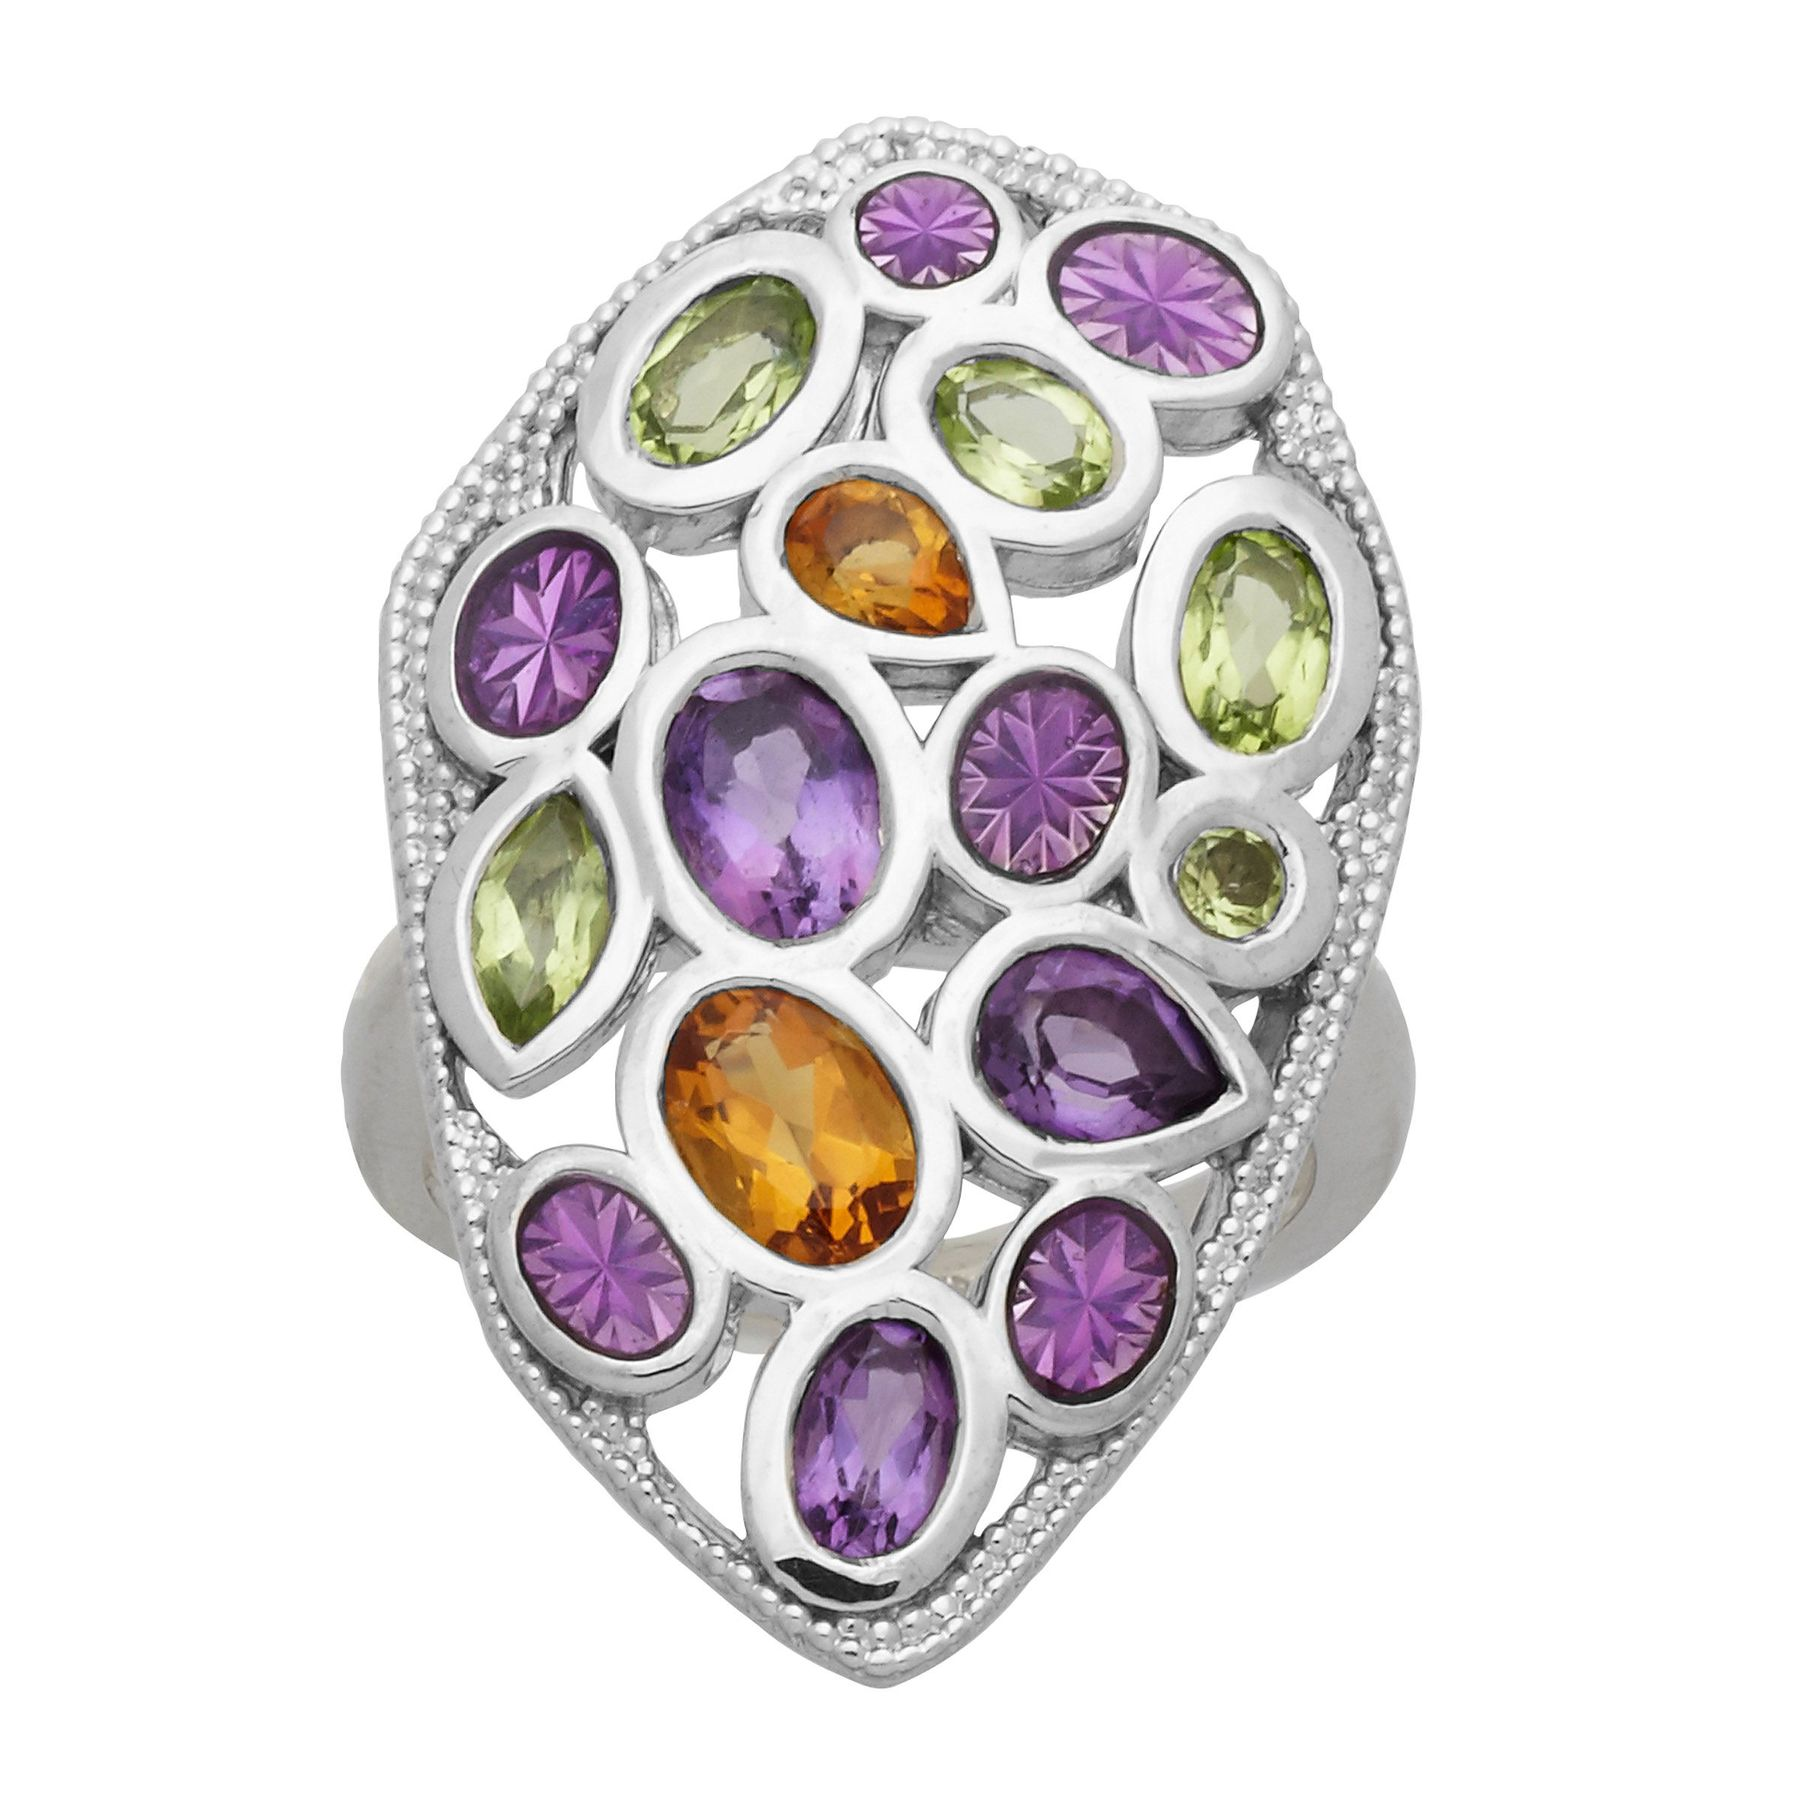 Citrine /& Amethyst Mosaic Ring in Sterling Silver 2 1//2 ct Natural Peridot